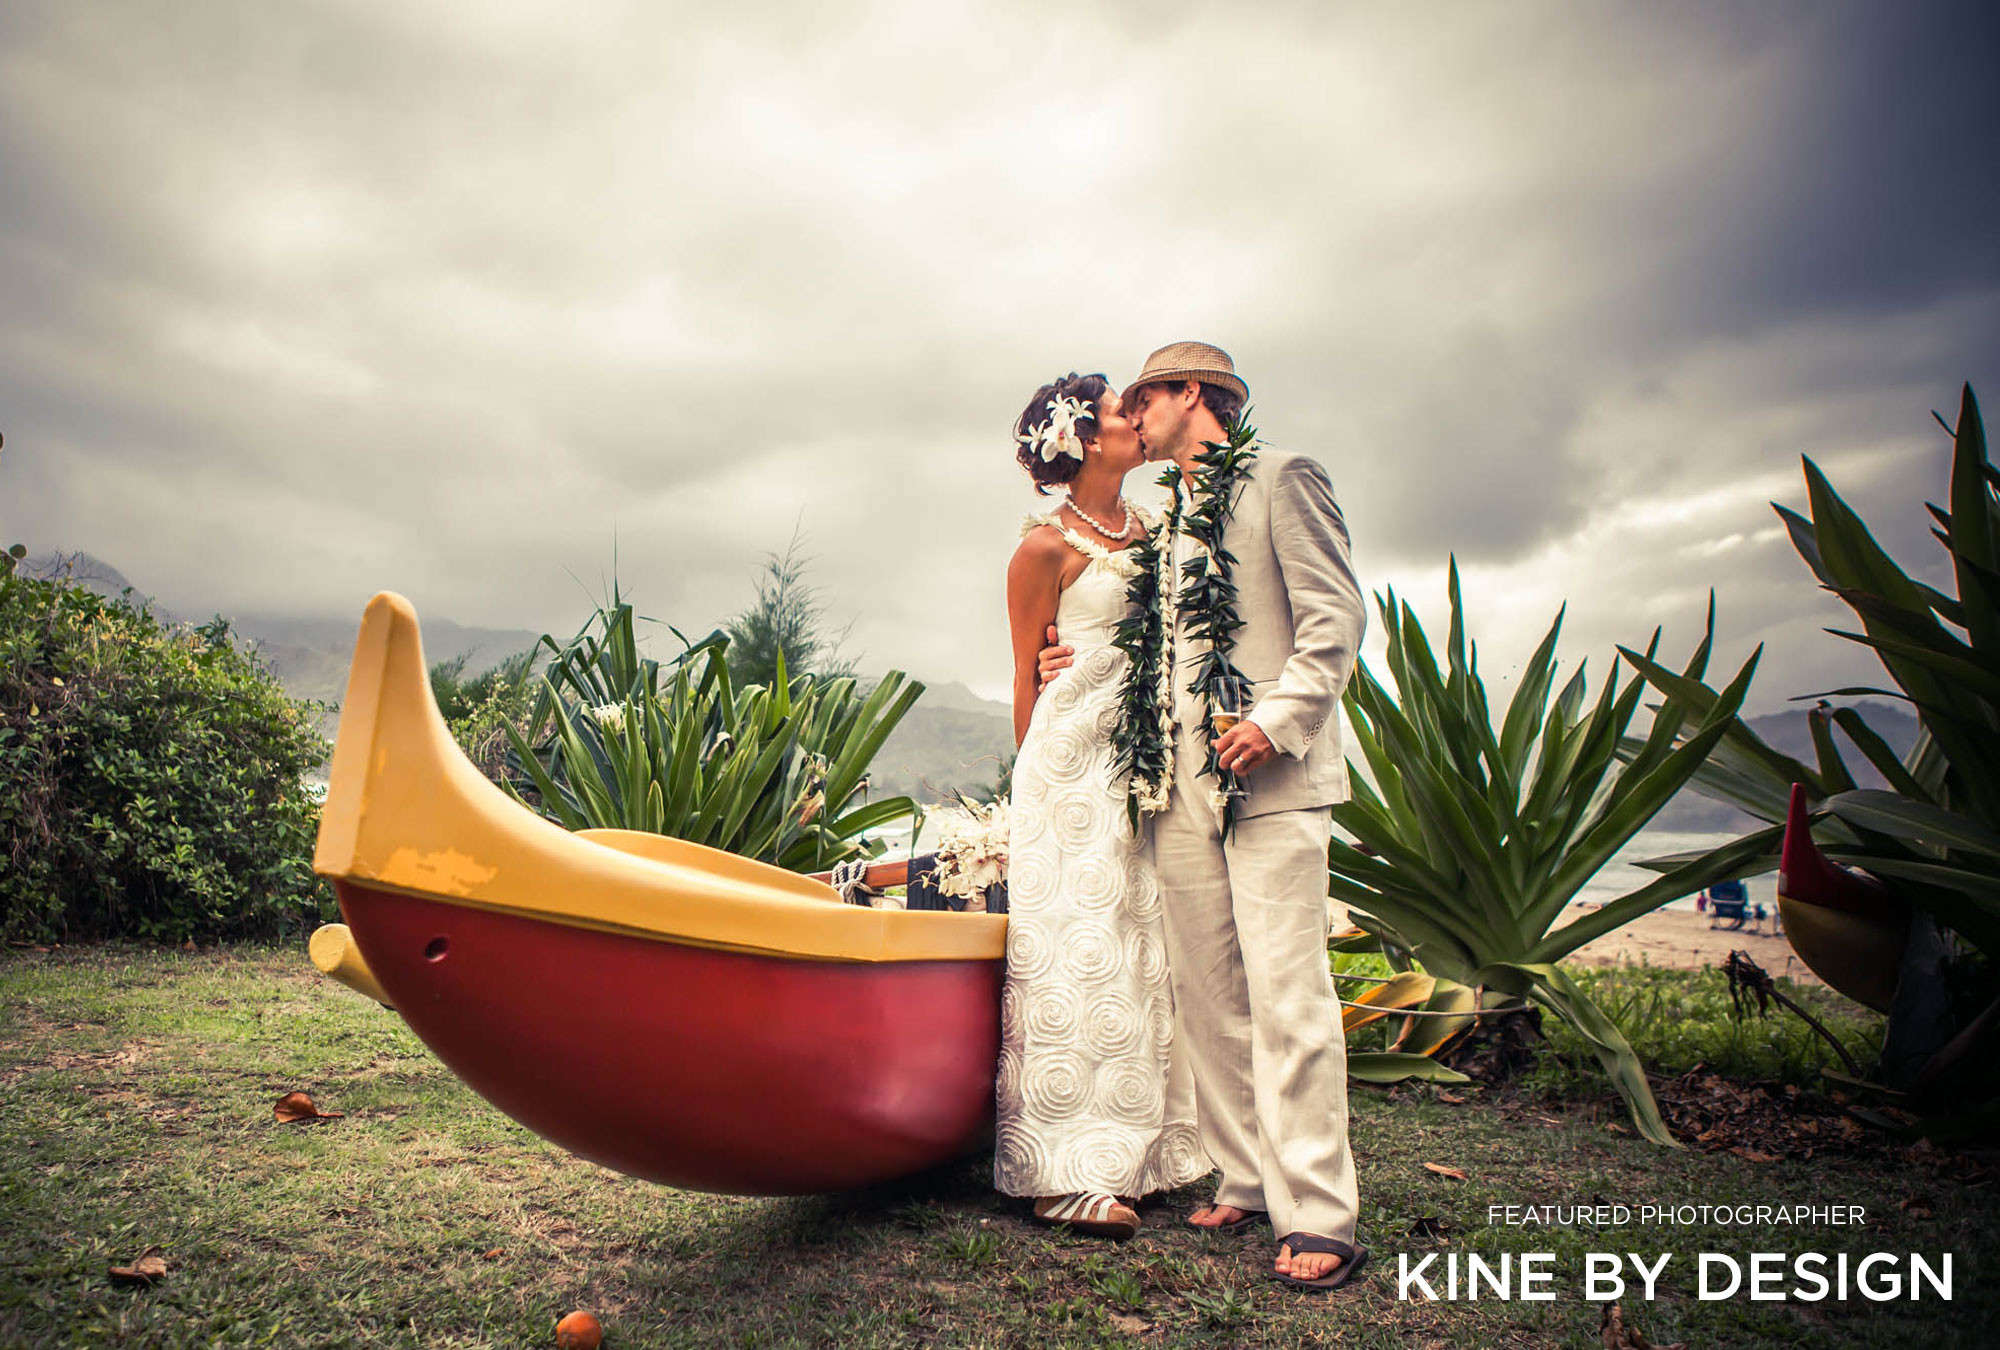 Kine By Design - Featured Photographer